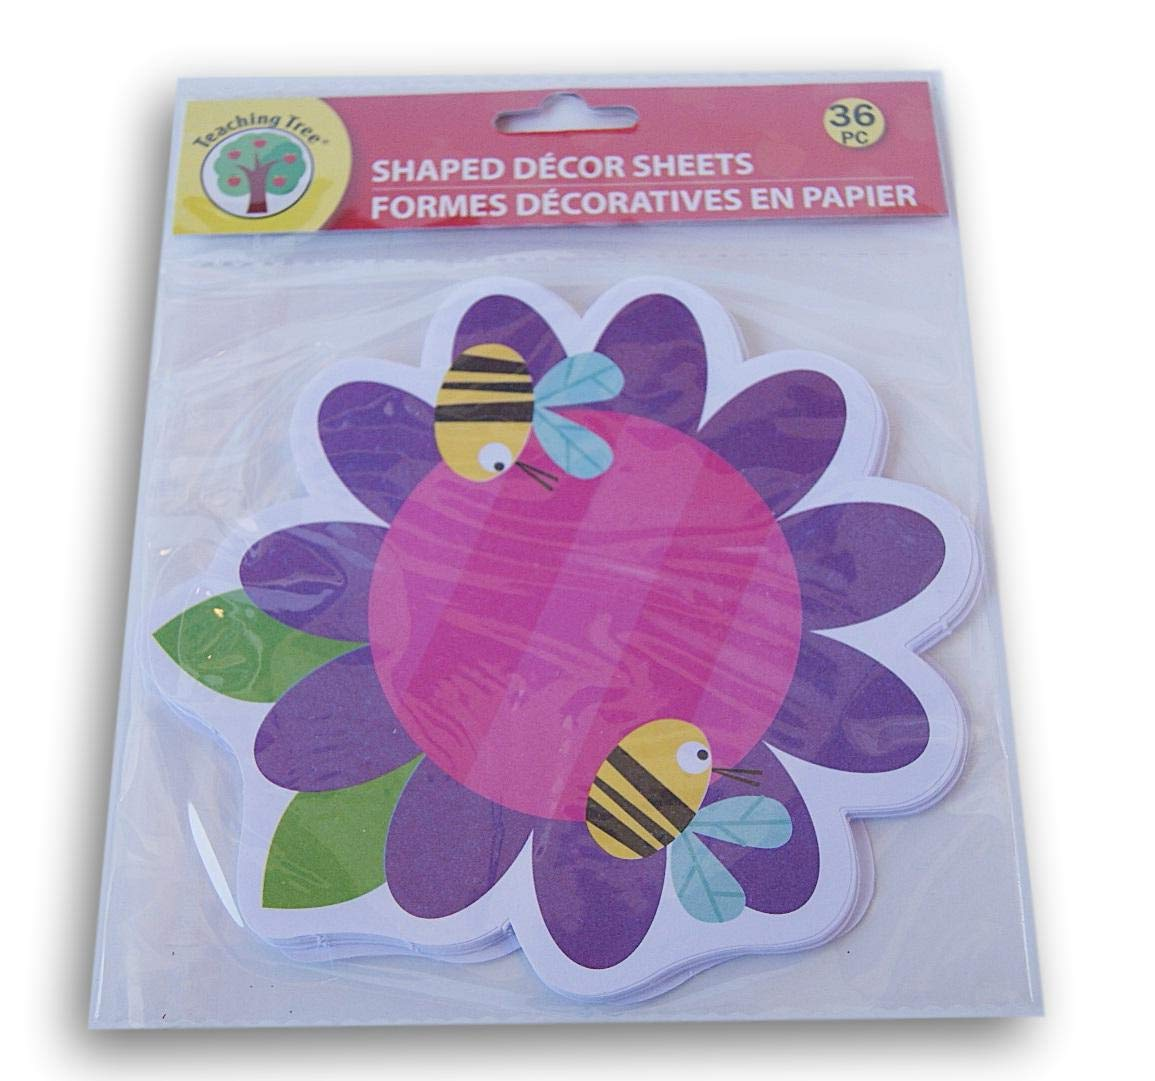 Teaching Tree Paper Shaped Decor Sheets - Bees and Flower - 36 Count by Teaching Tree